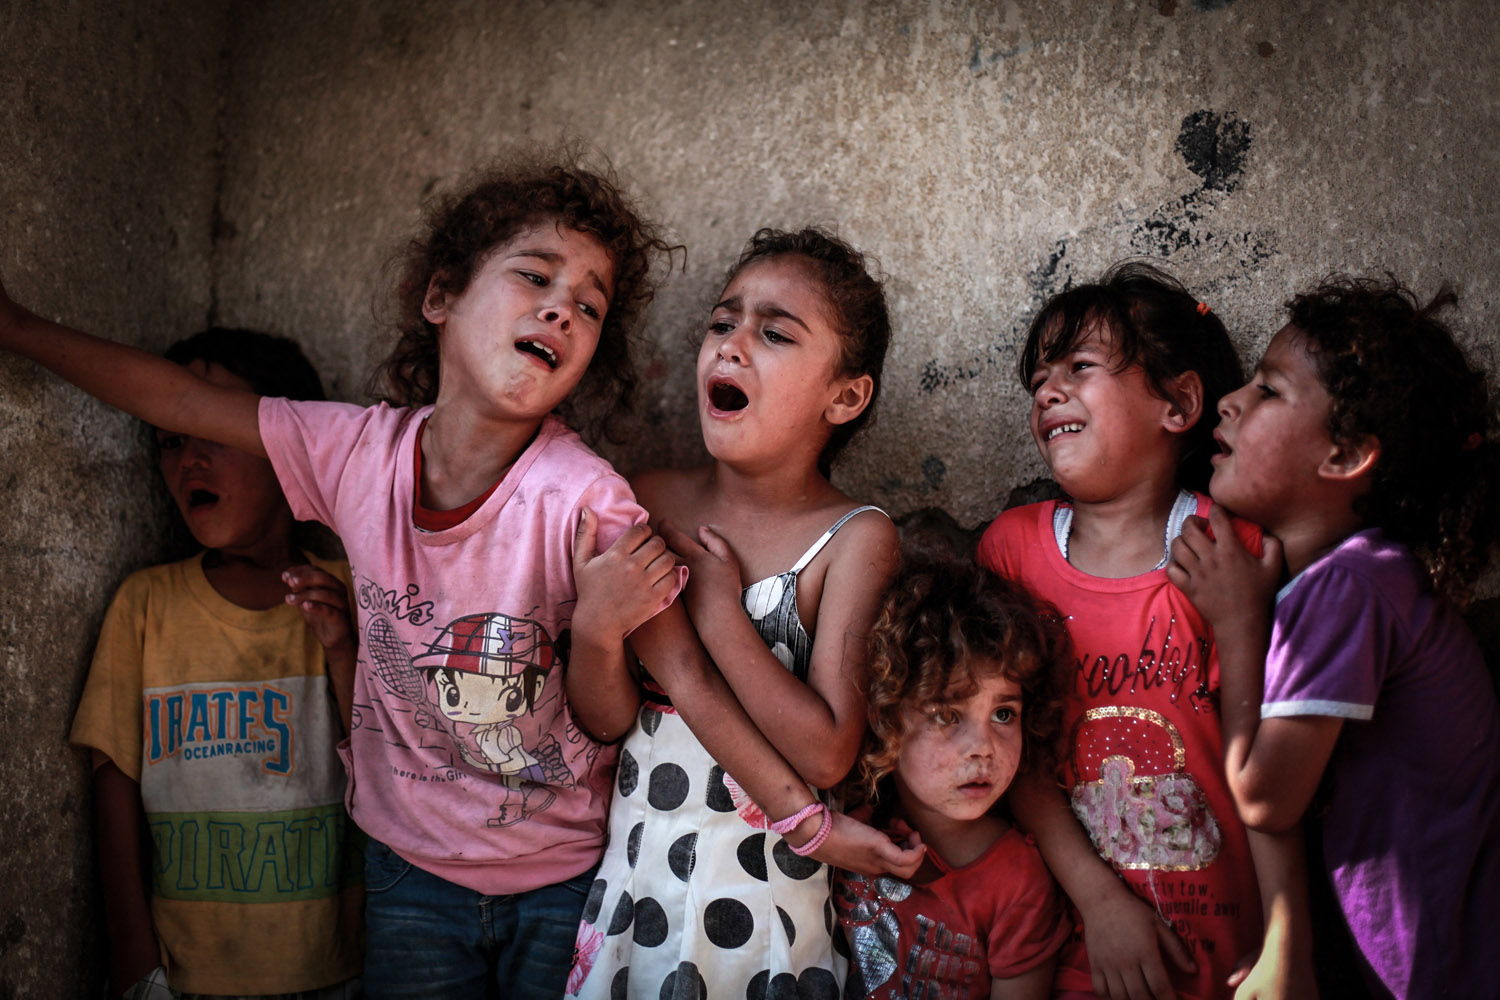 Jul. 16, 2014. Palestinian relatives of the four boys killed in Israeli bombardment, all from the Bakr family, cry at the morgue of the hospital in Gaza City.